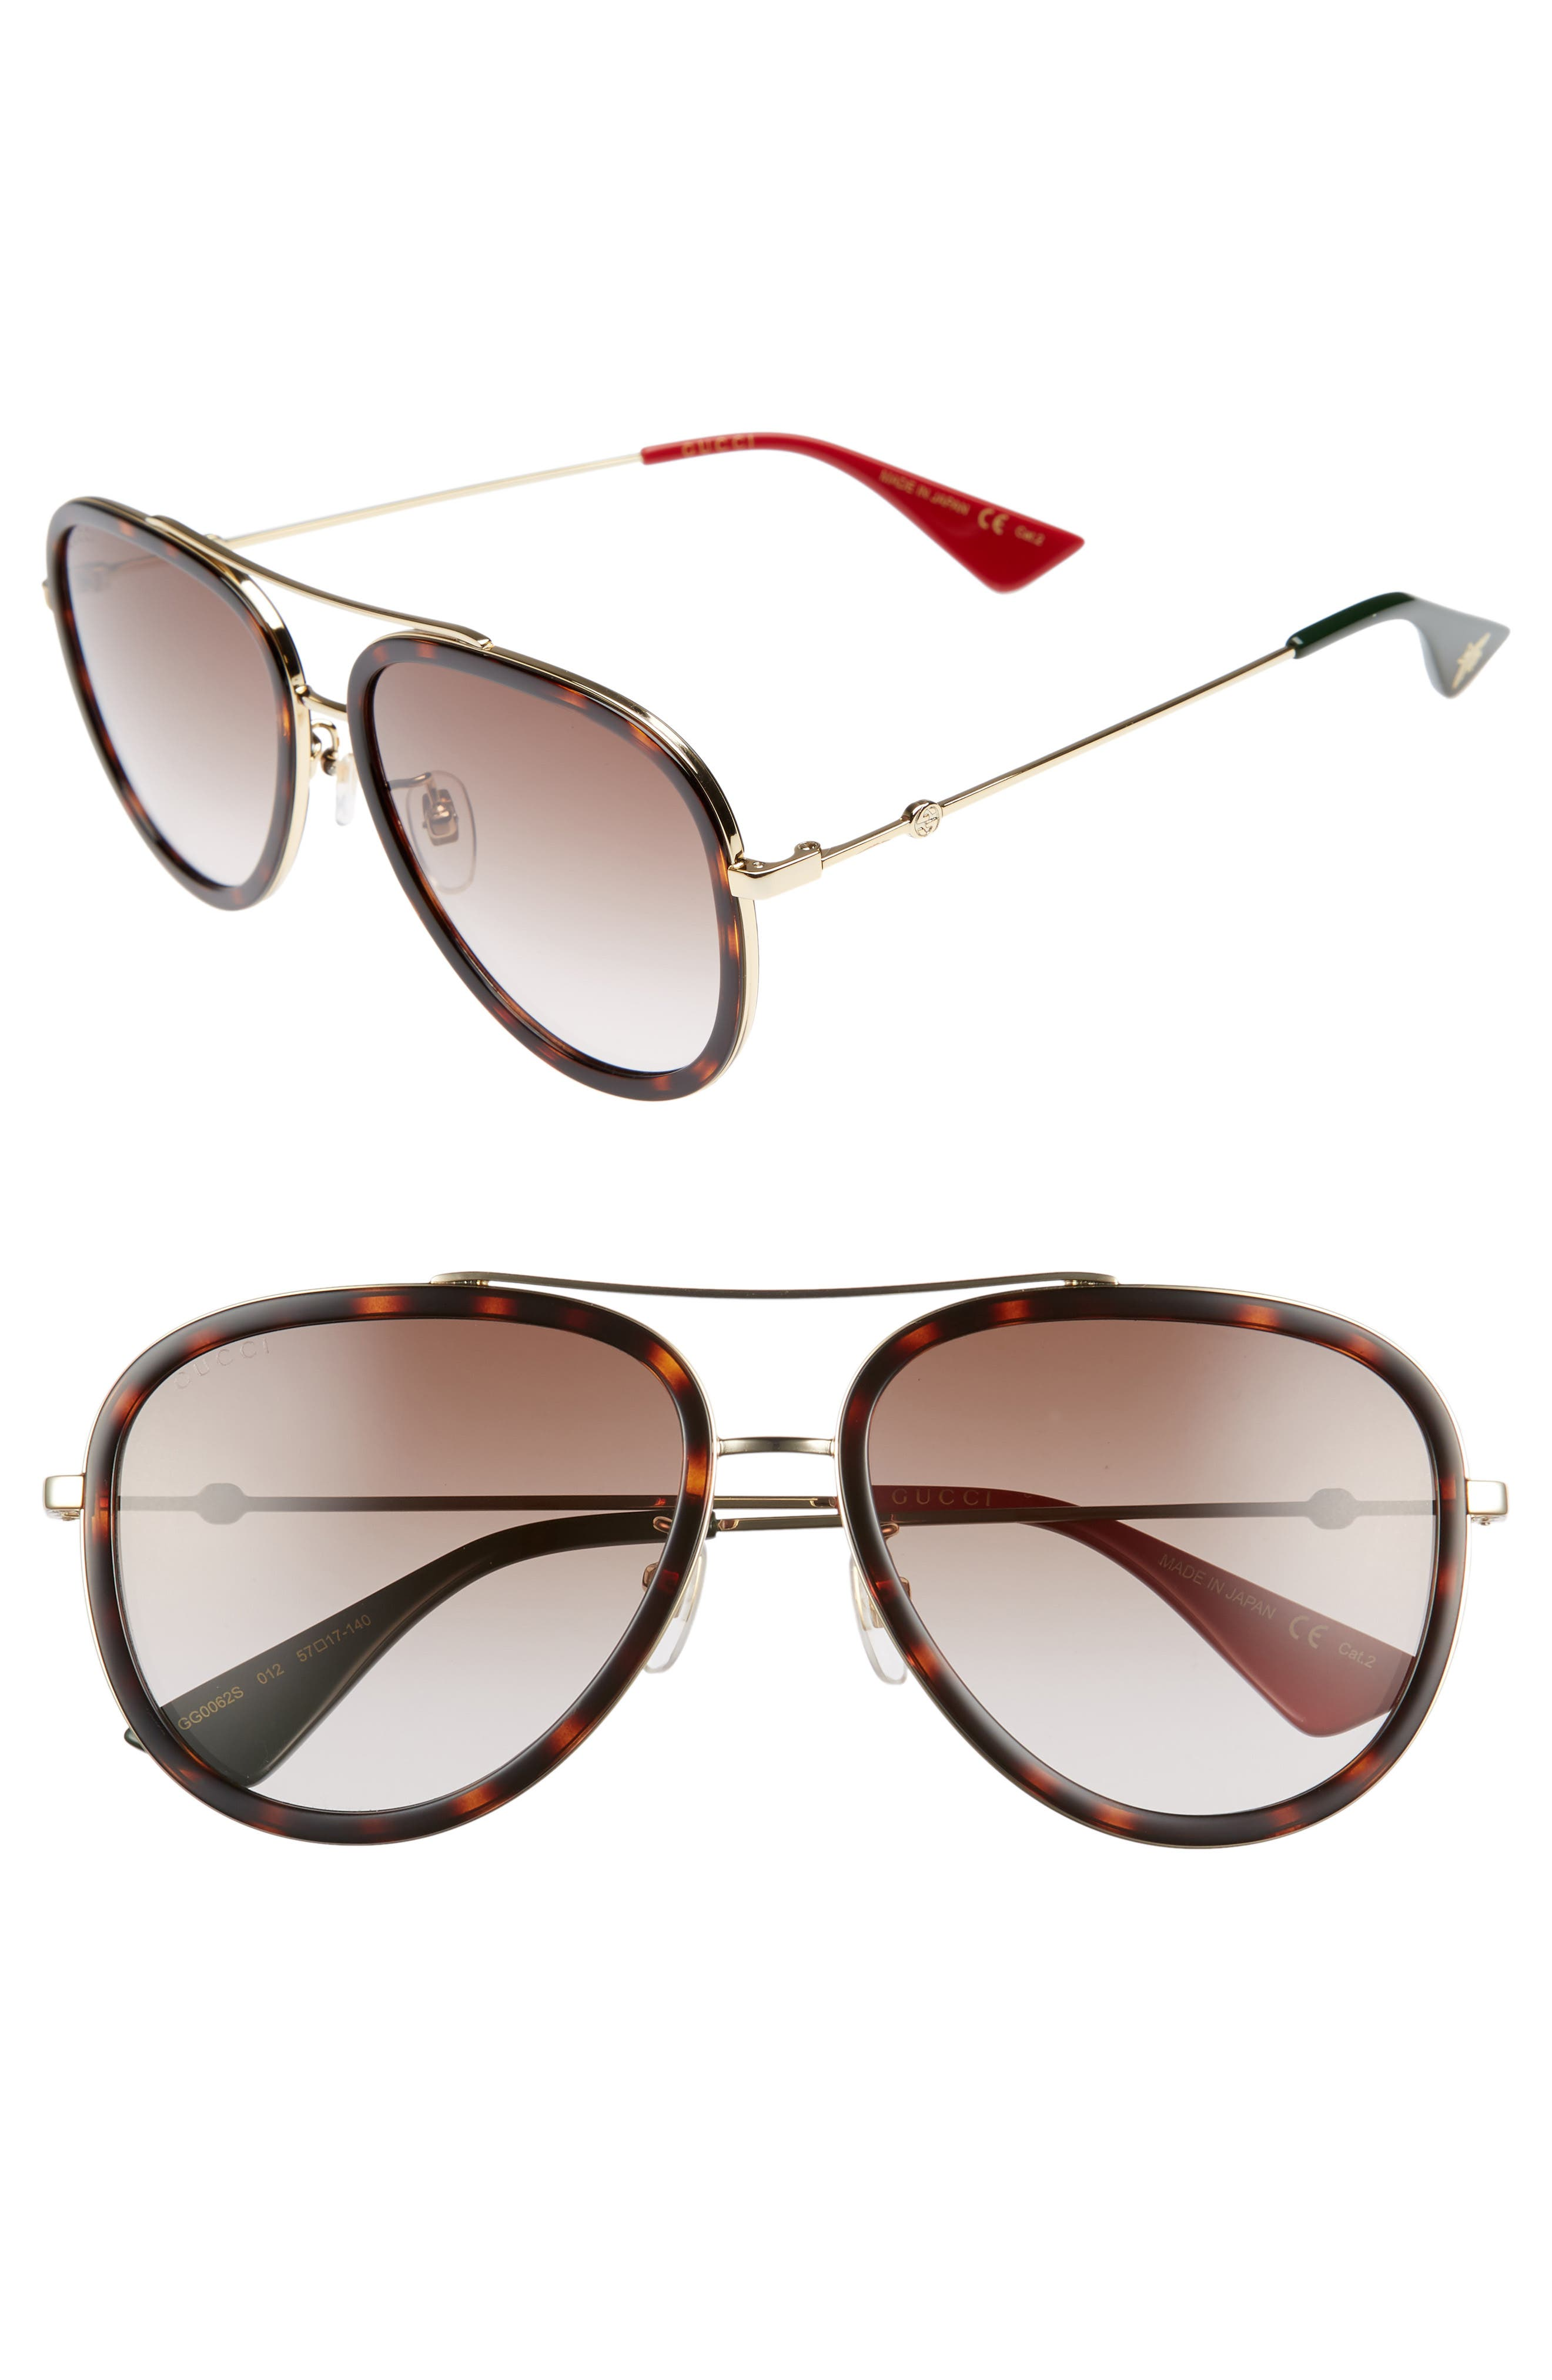 57mm Aviator Sunglasses,                             Main thumbnail 1, color,                             GOLD/ RED/ GREEN